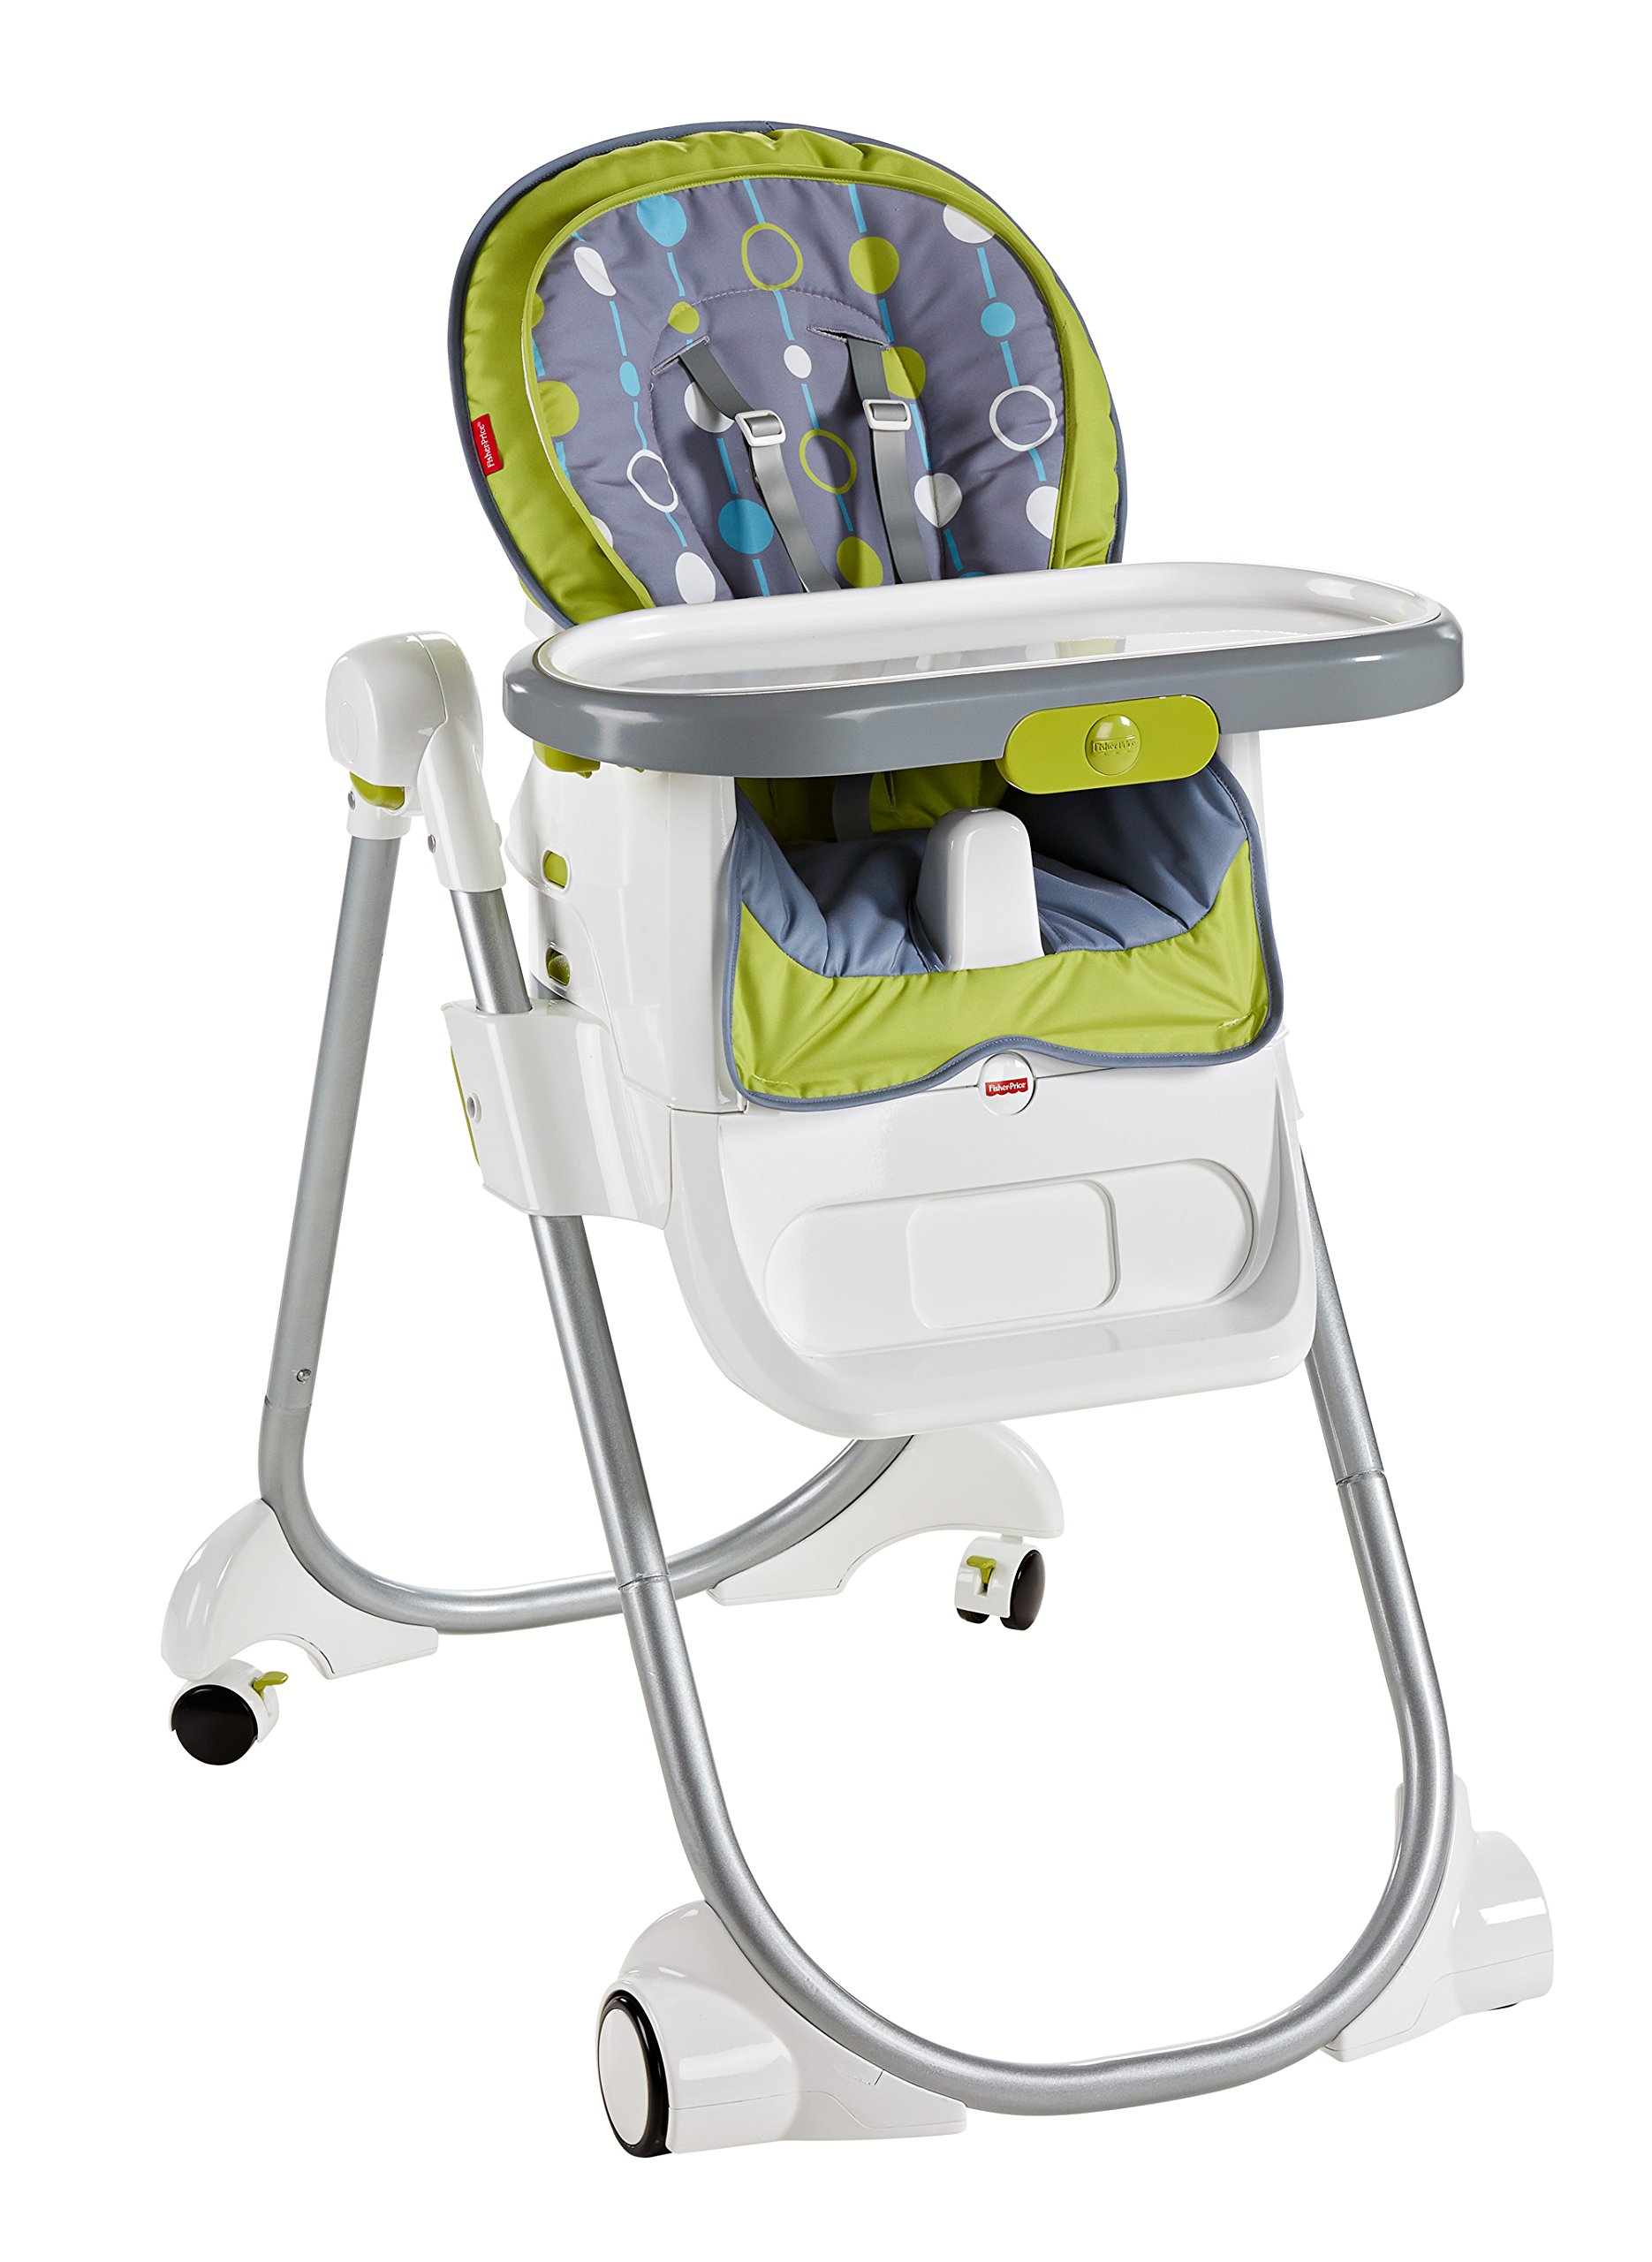 Fisher-Price 4-in-1 Total Clean High Chair, Green/Gray by Fisher-Price (Image #2)